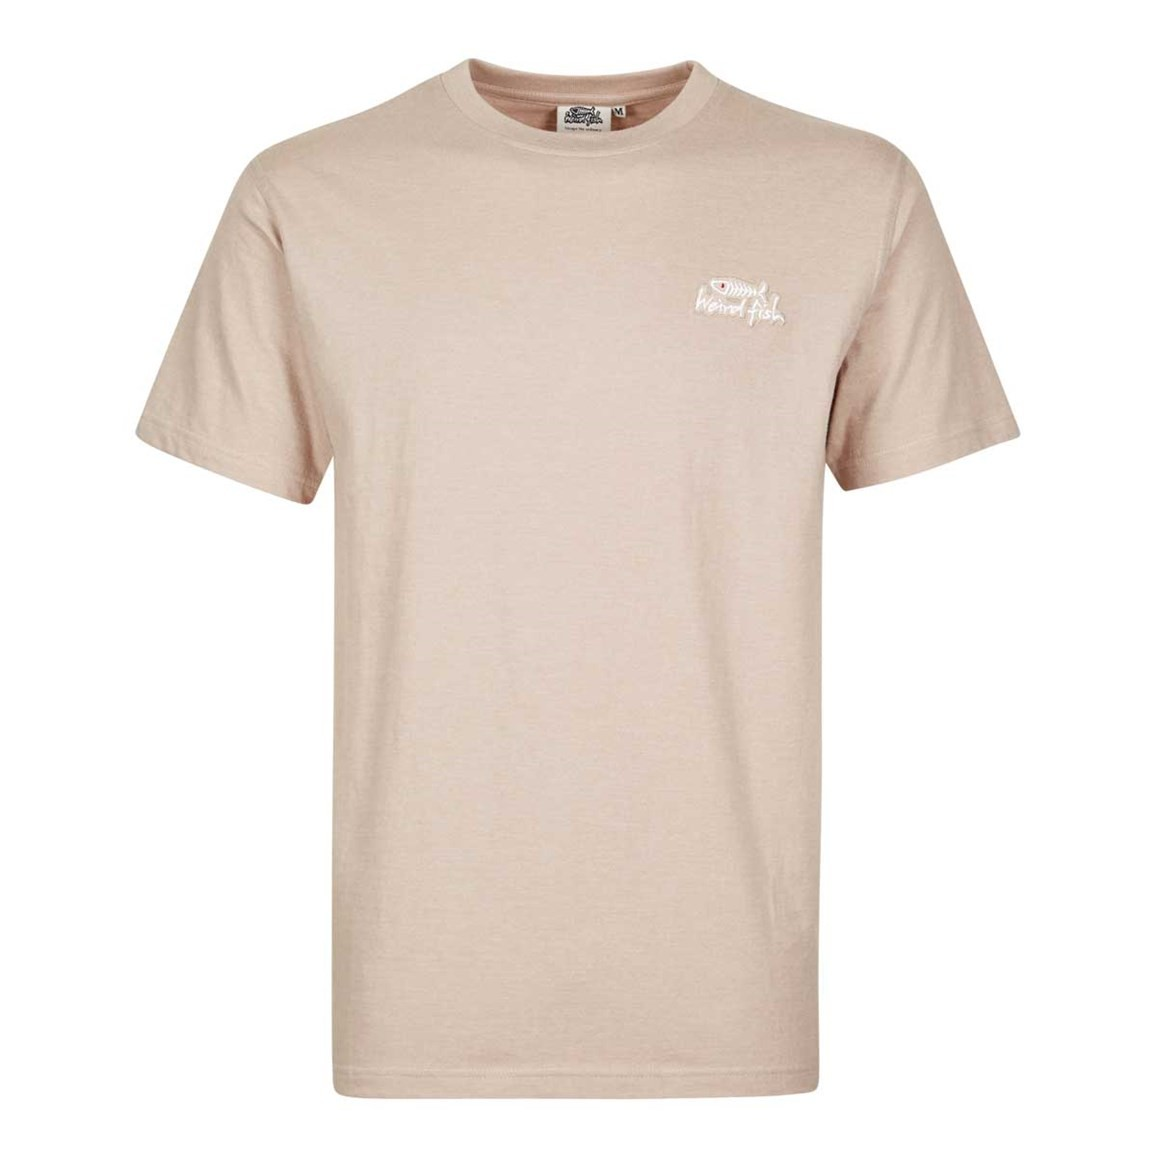 Image of Weird Fish Bones Embroidered Logo Classic Plain T-Shirt String Marl Size 2XL